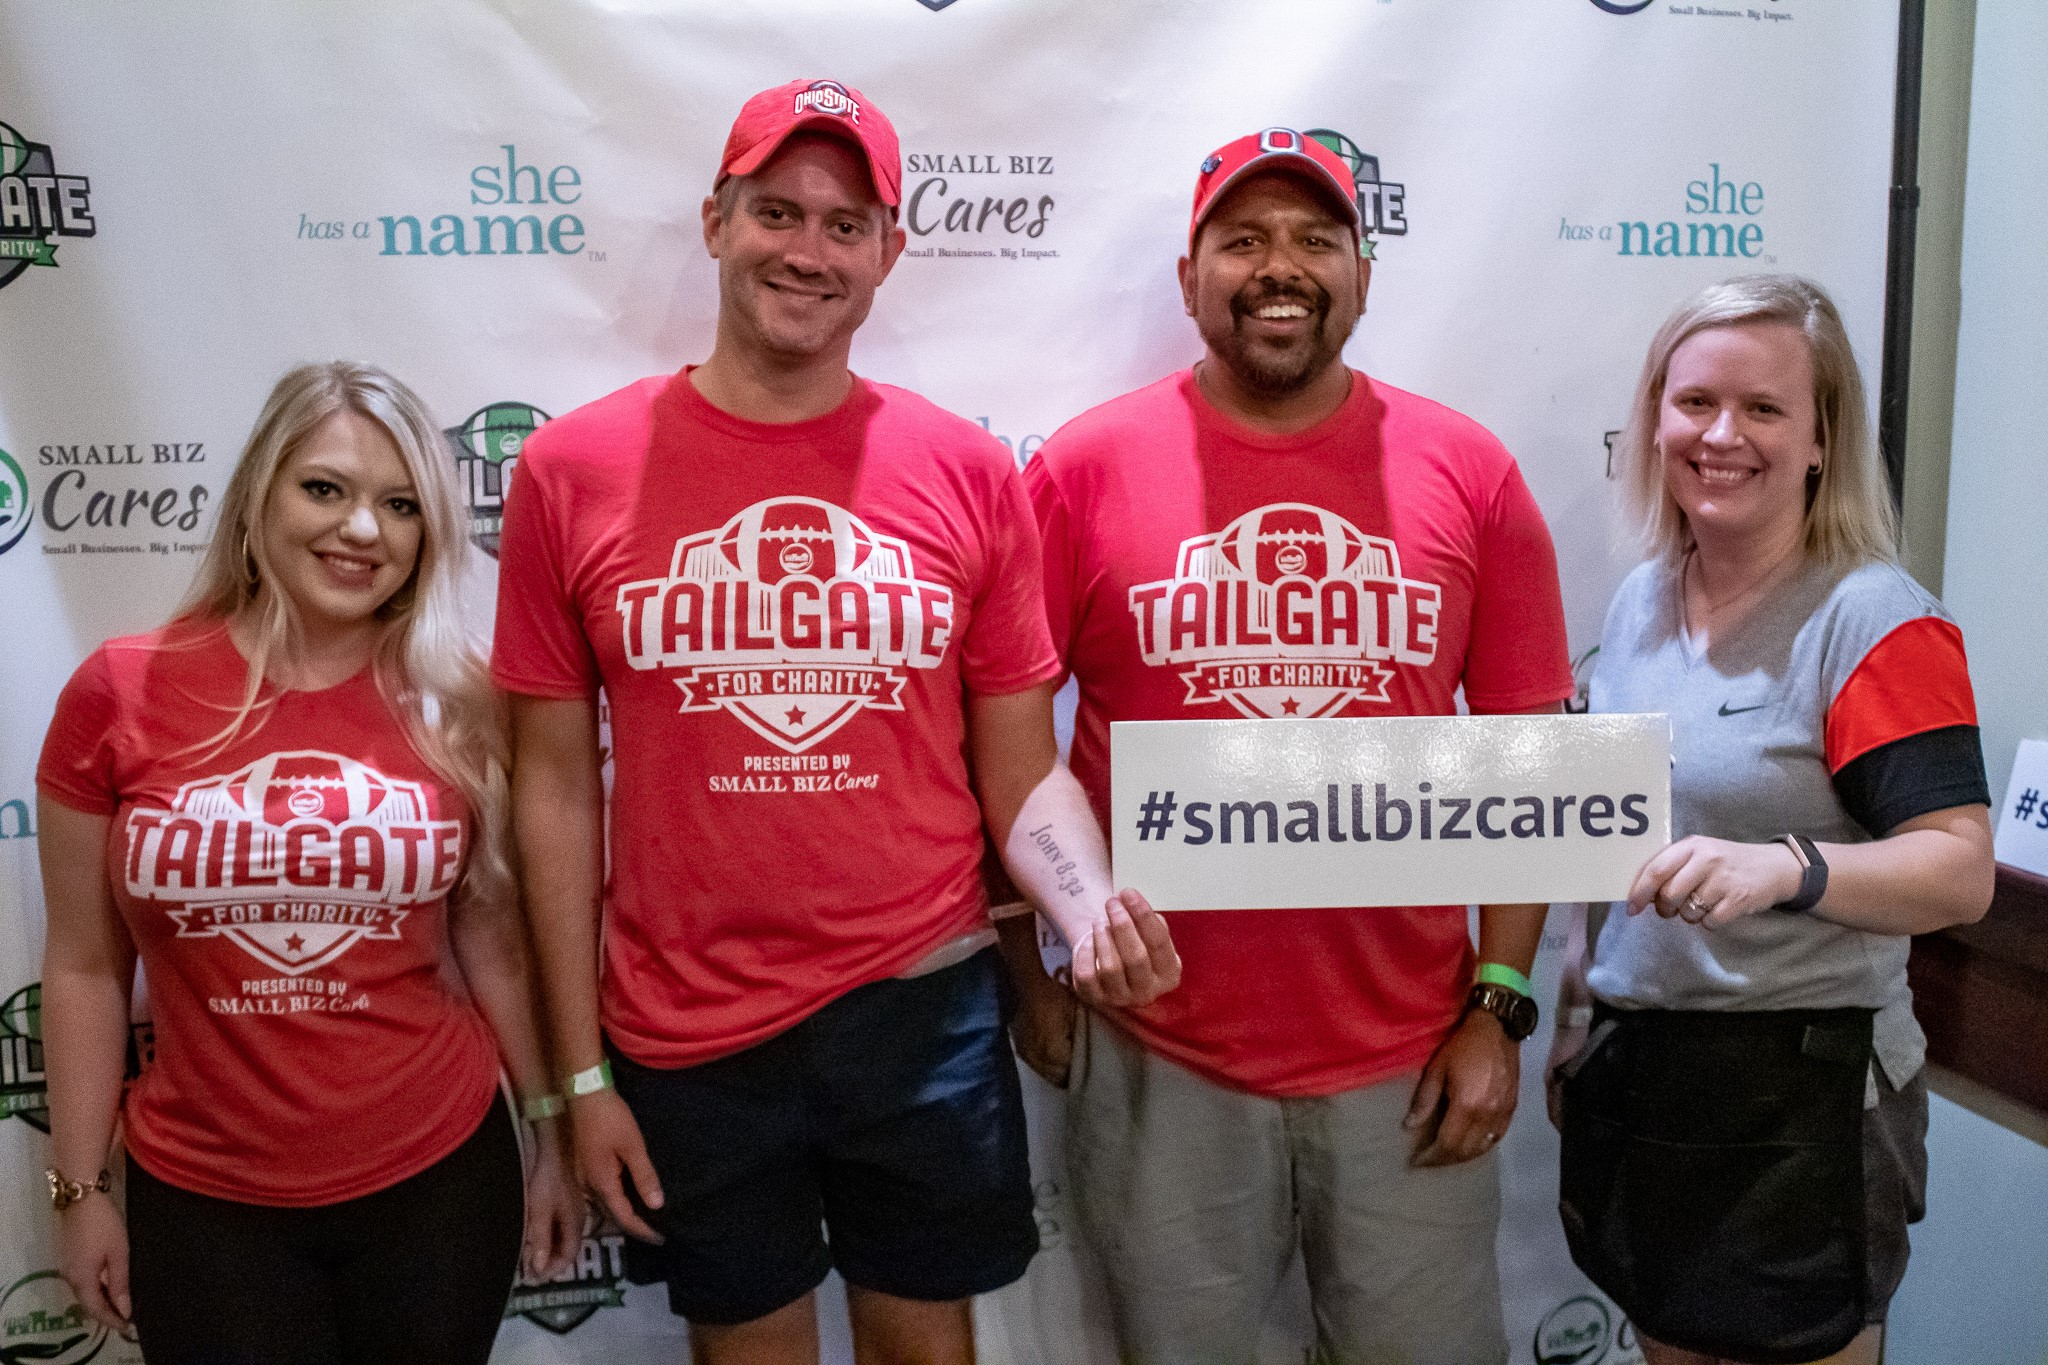 Small Biz Cares nonprofit Volunteers Fundraising